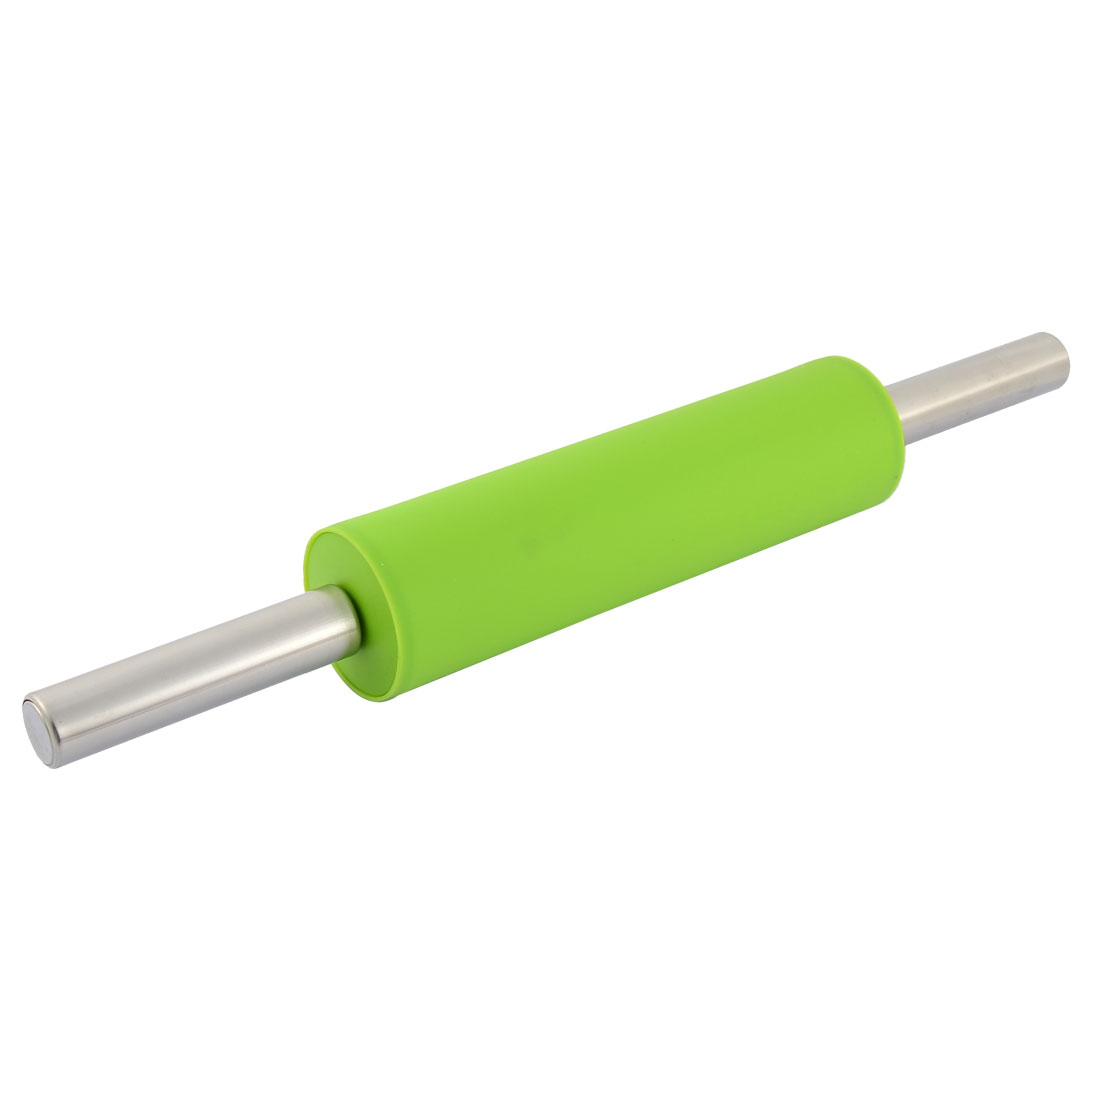 Silicone Surface Kitchen Dough Roller Rolling Pin Green Silver Tone 40cm Length